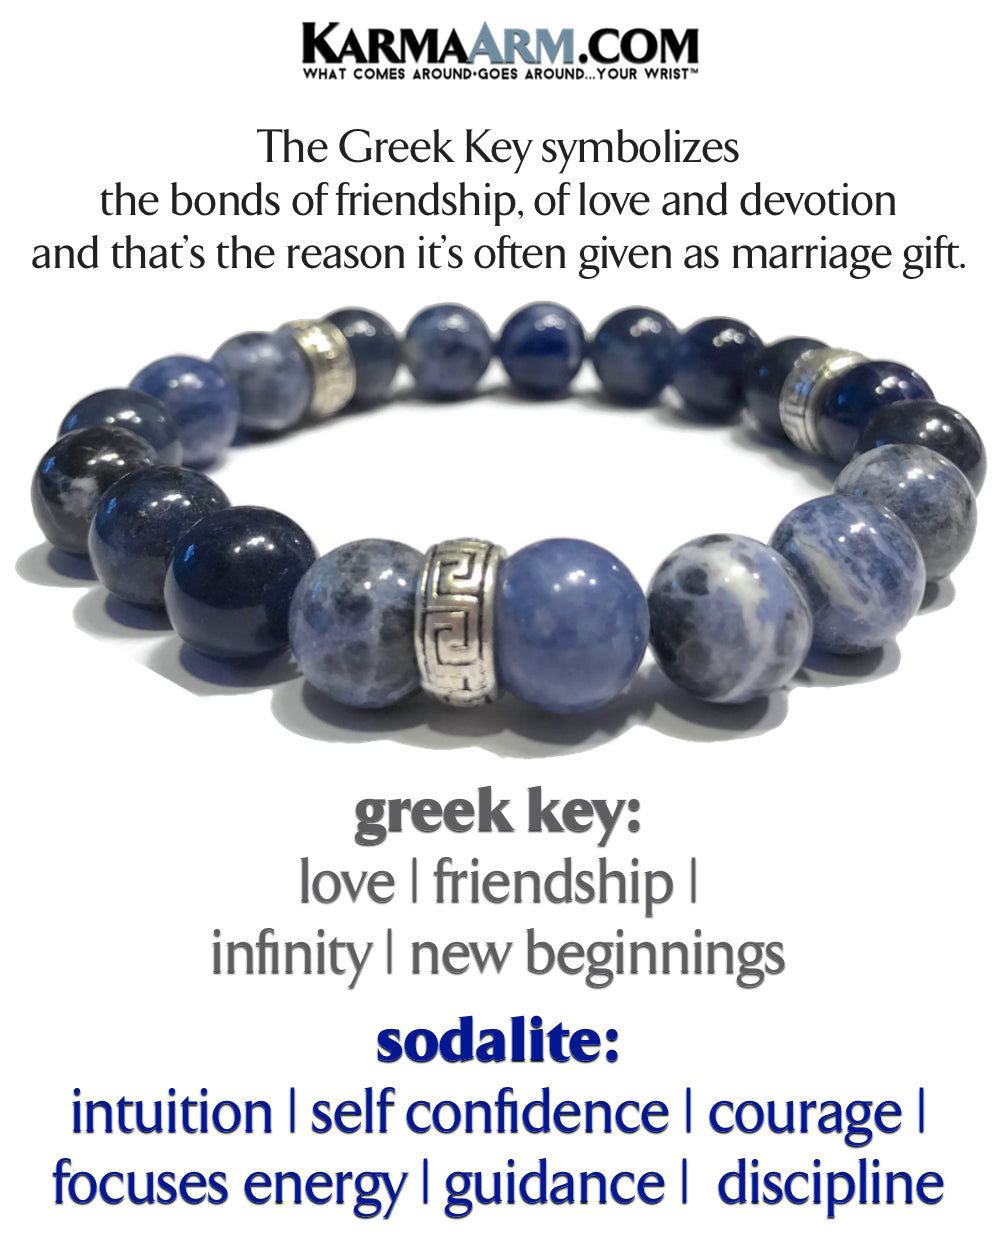 Yoga Beaded Mens Stretch Bracelets.  Meditation Jewelry. Reiki Healing Energy Chakra Bracelets. Greek Key Sodalite.